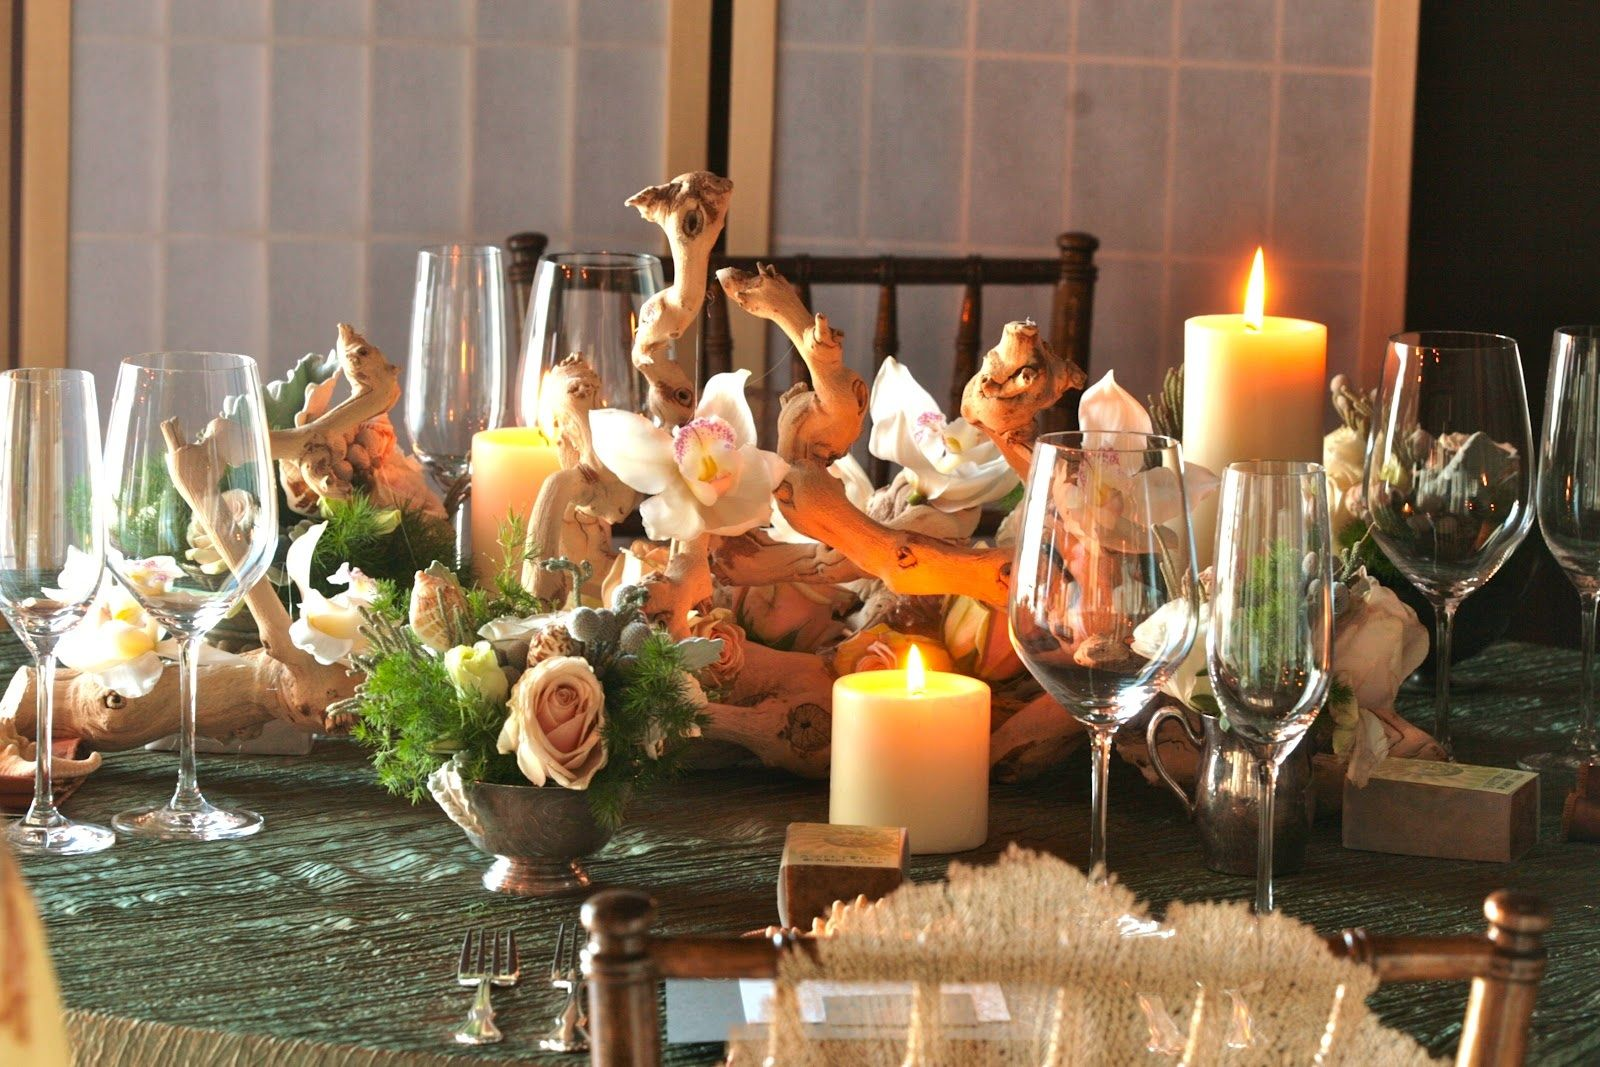 Driftwood plus flowers for centerpieces, cuts down on flower costs